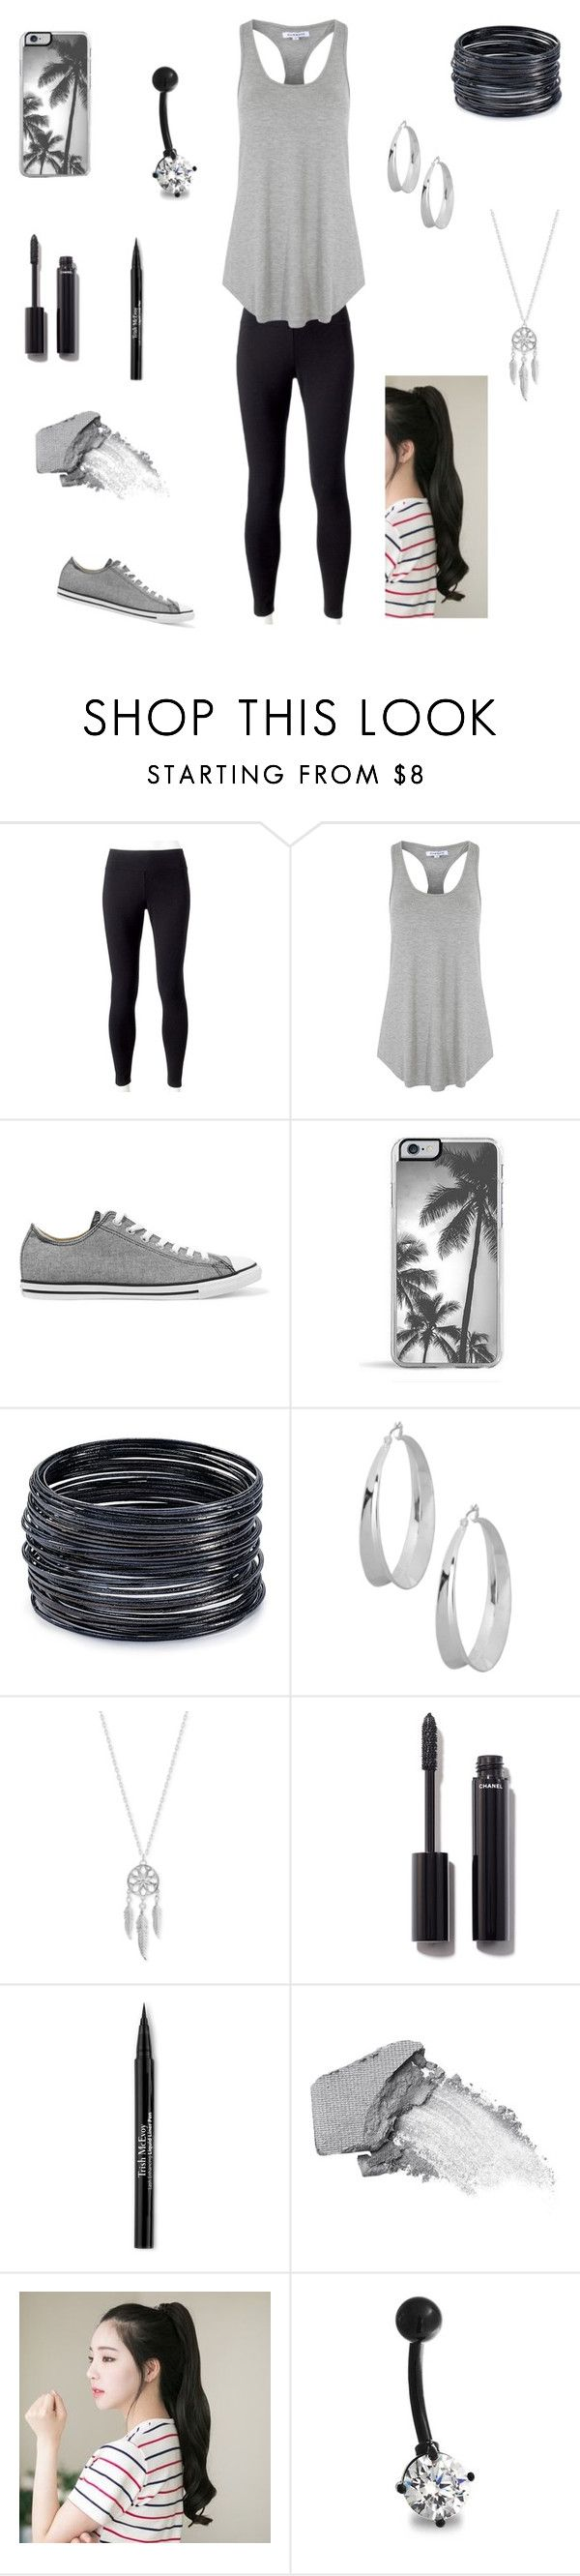 """Comfy but Cute"" by boredandlazy on Polyvore featuring Jockey, Glamorous, Converse, Zero Gravity, ABS by Allen Schwartz, Robert Lee Morris, Lucky Brand, Chanel, Trish McEvoy and Urban Decay"